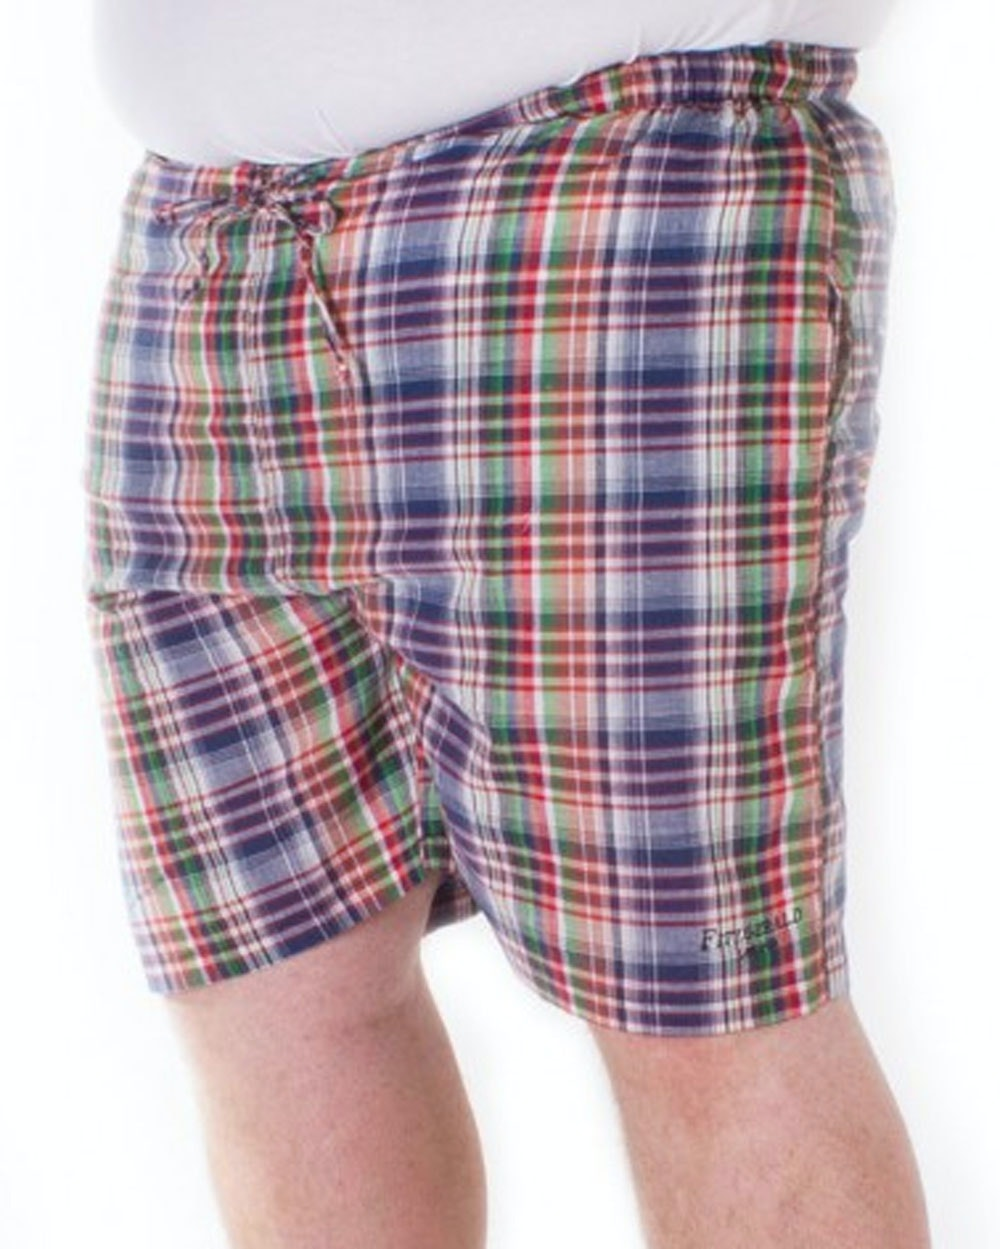 Fitzgerald Loungewear check shorts Navy Blue